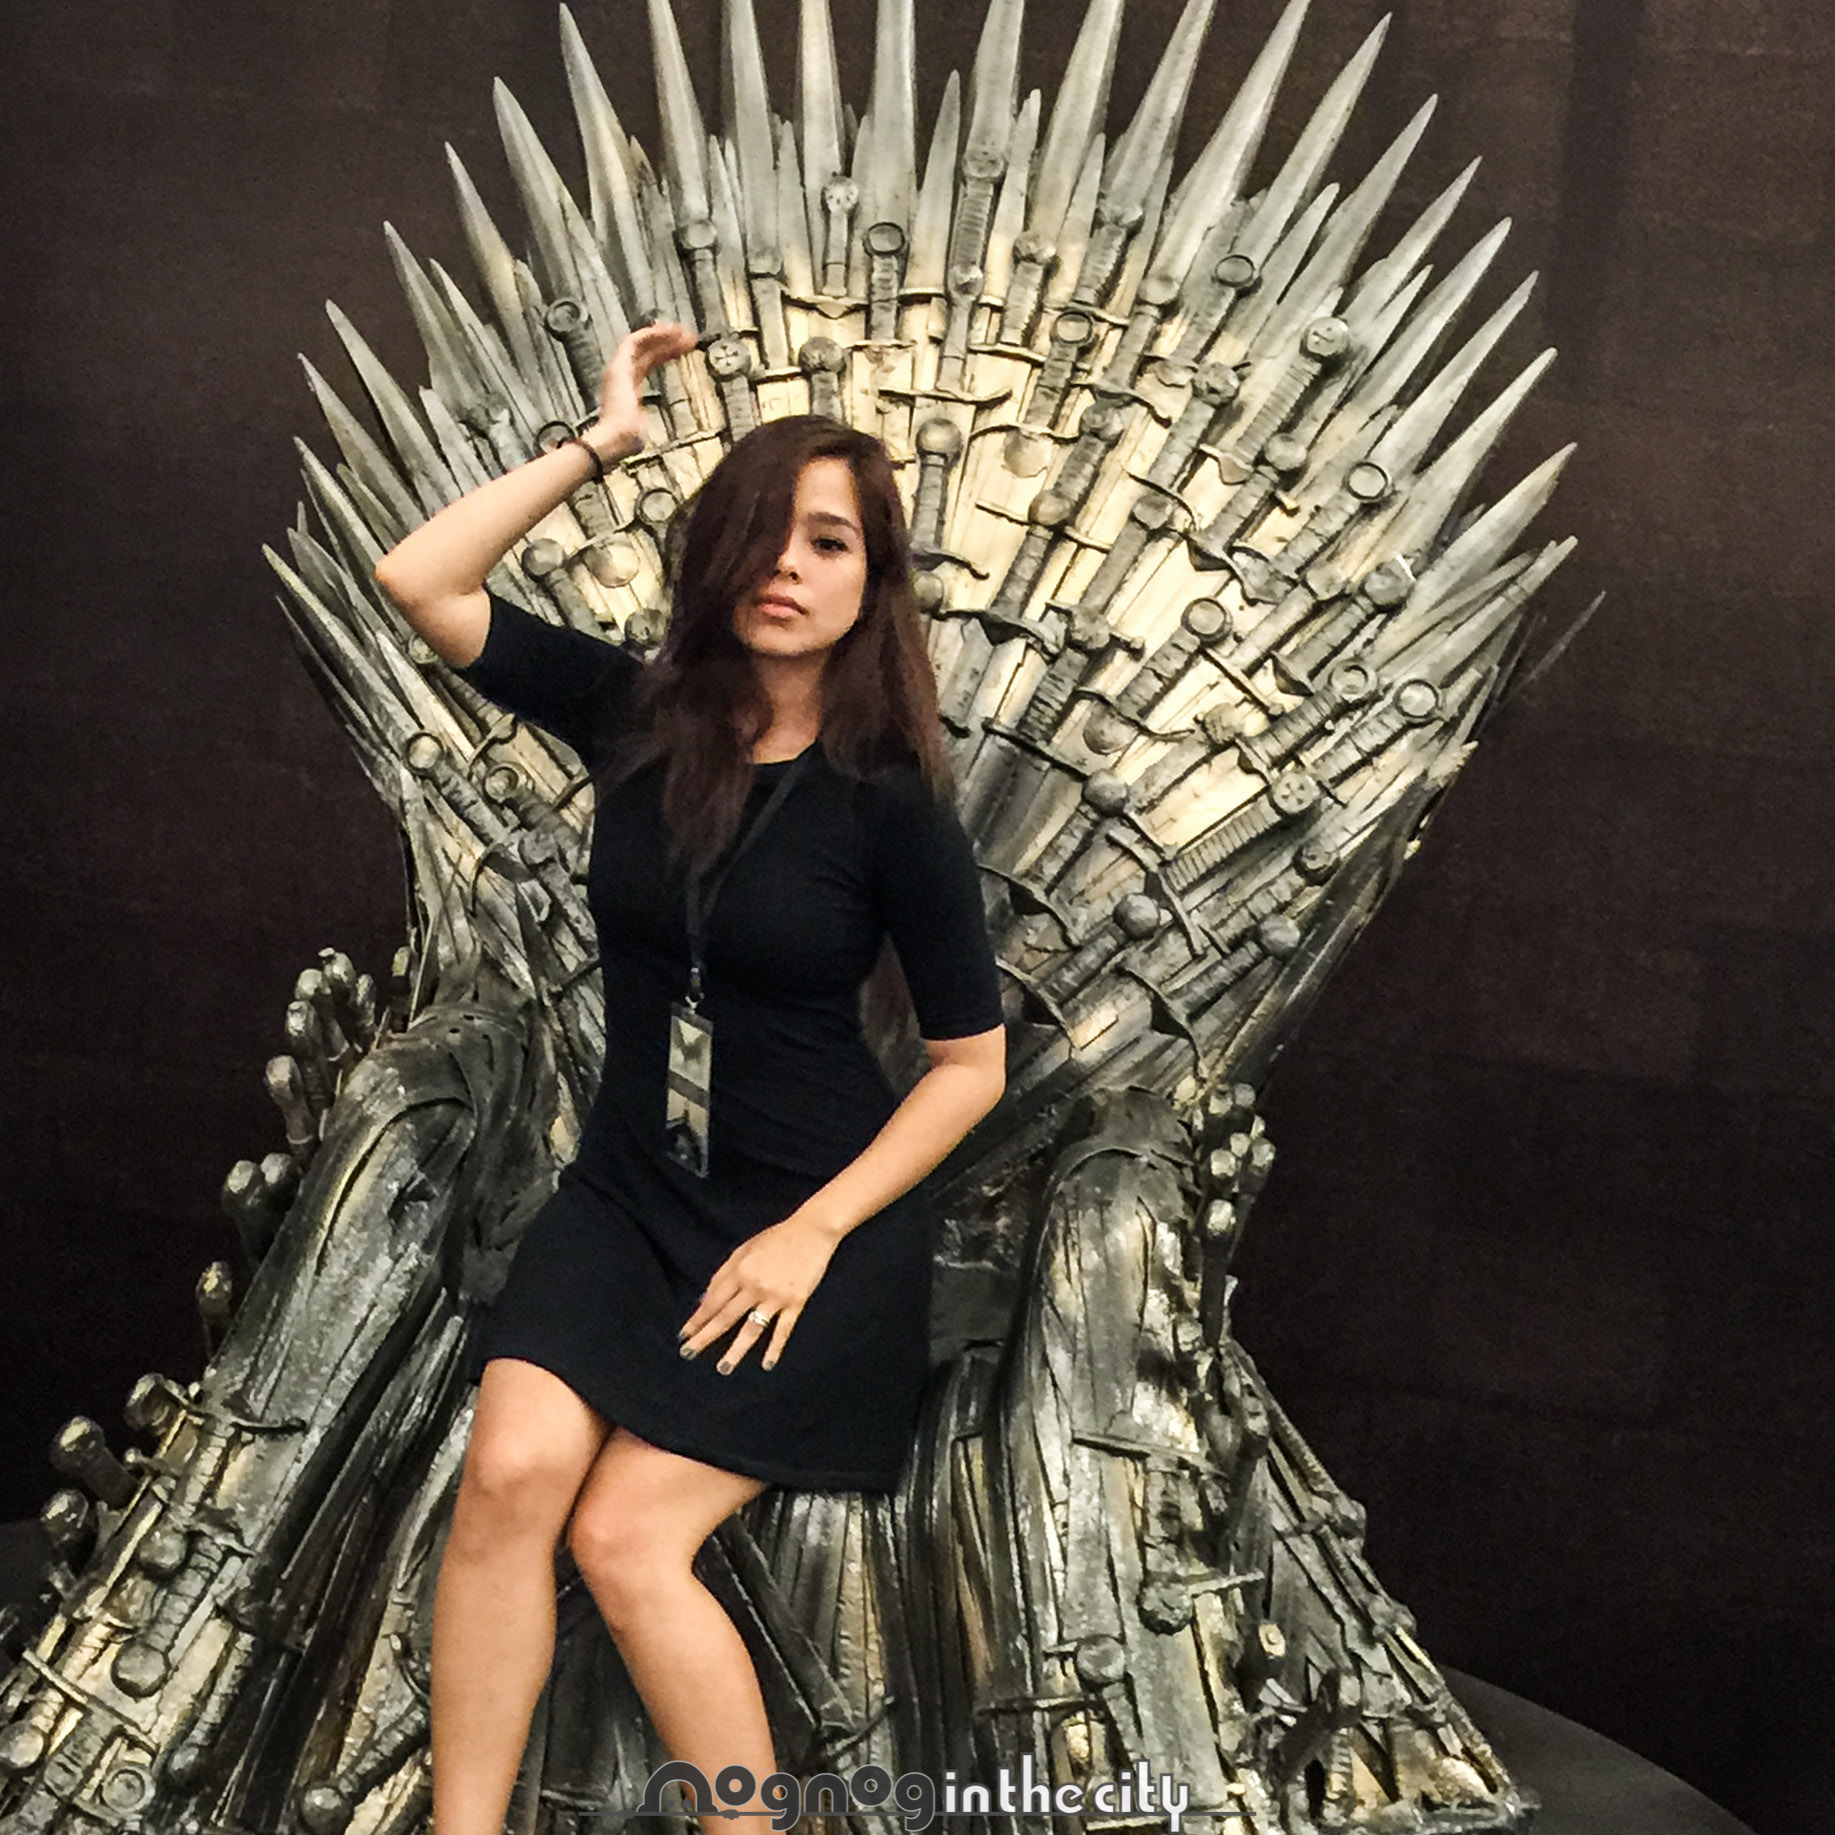 Game Of Thrones Iron Throne Replica Is In Manila